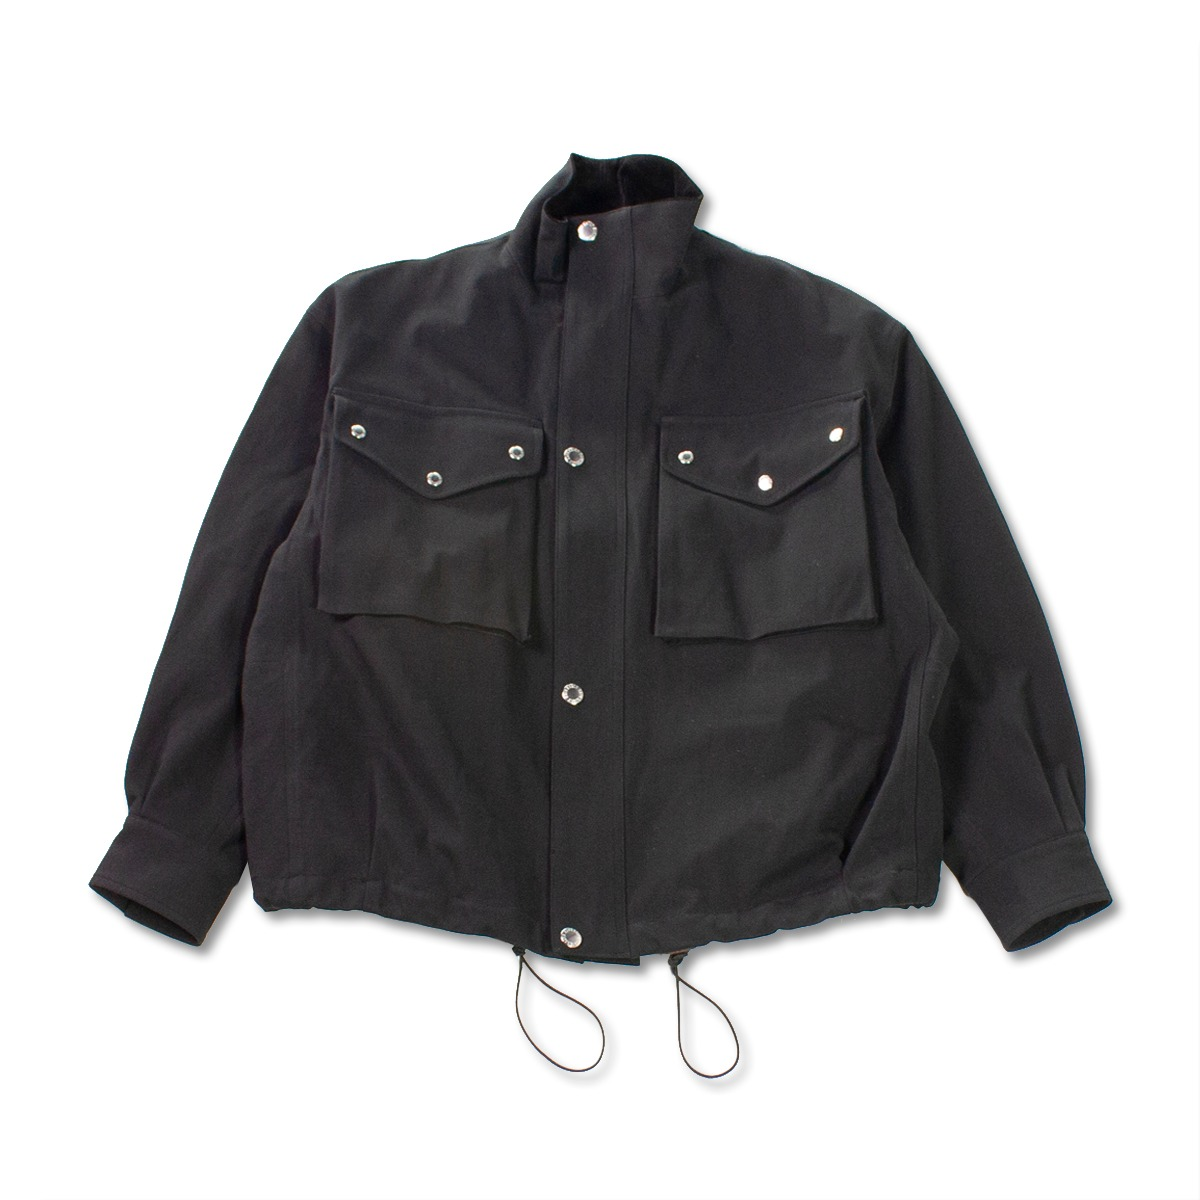 [HAVERSACK] TWILL DENISON JACKET 'BLACK'